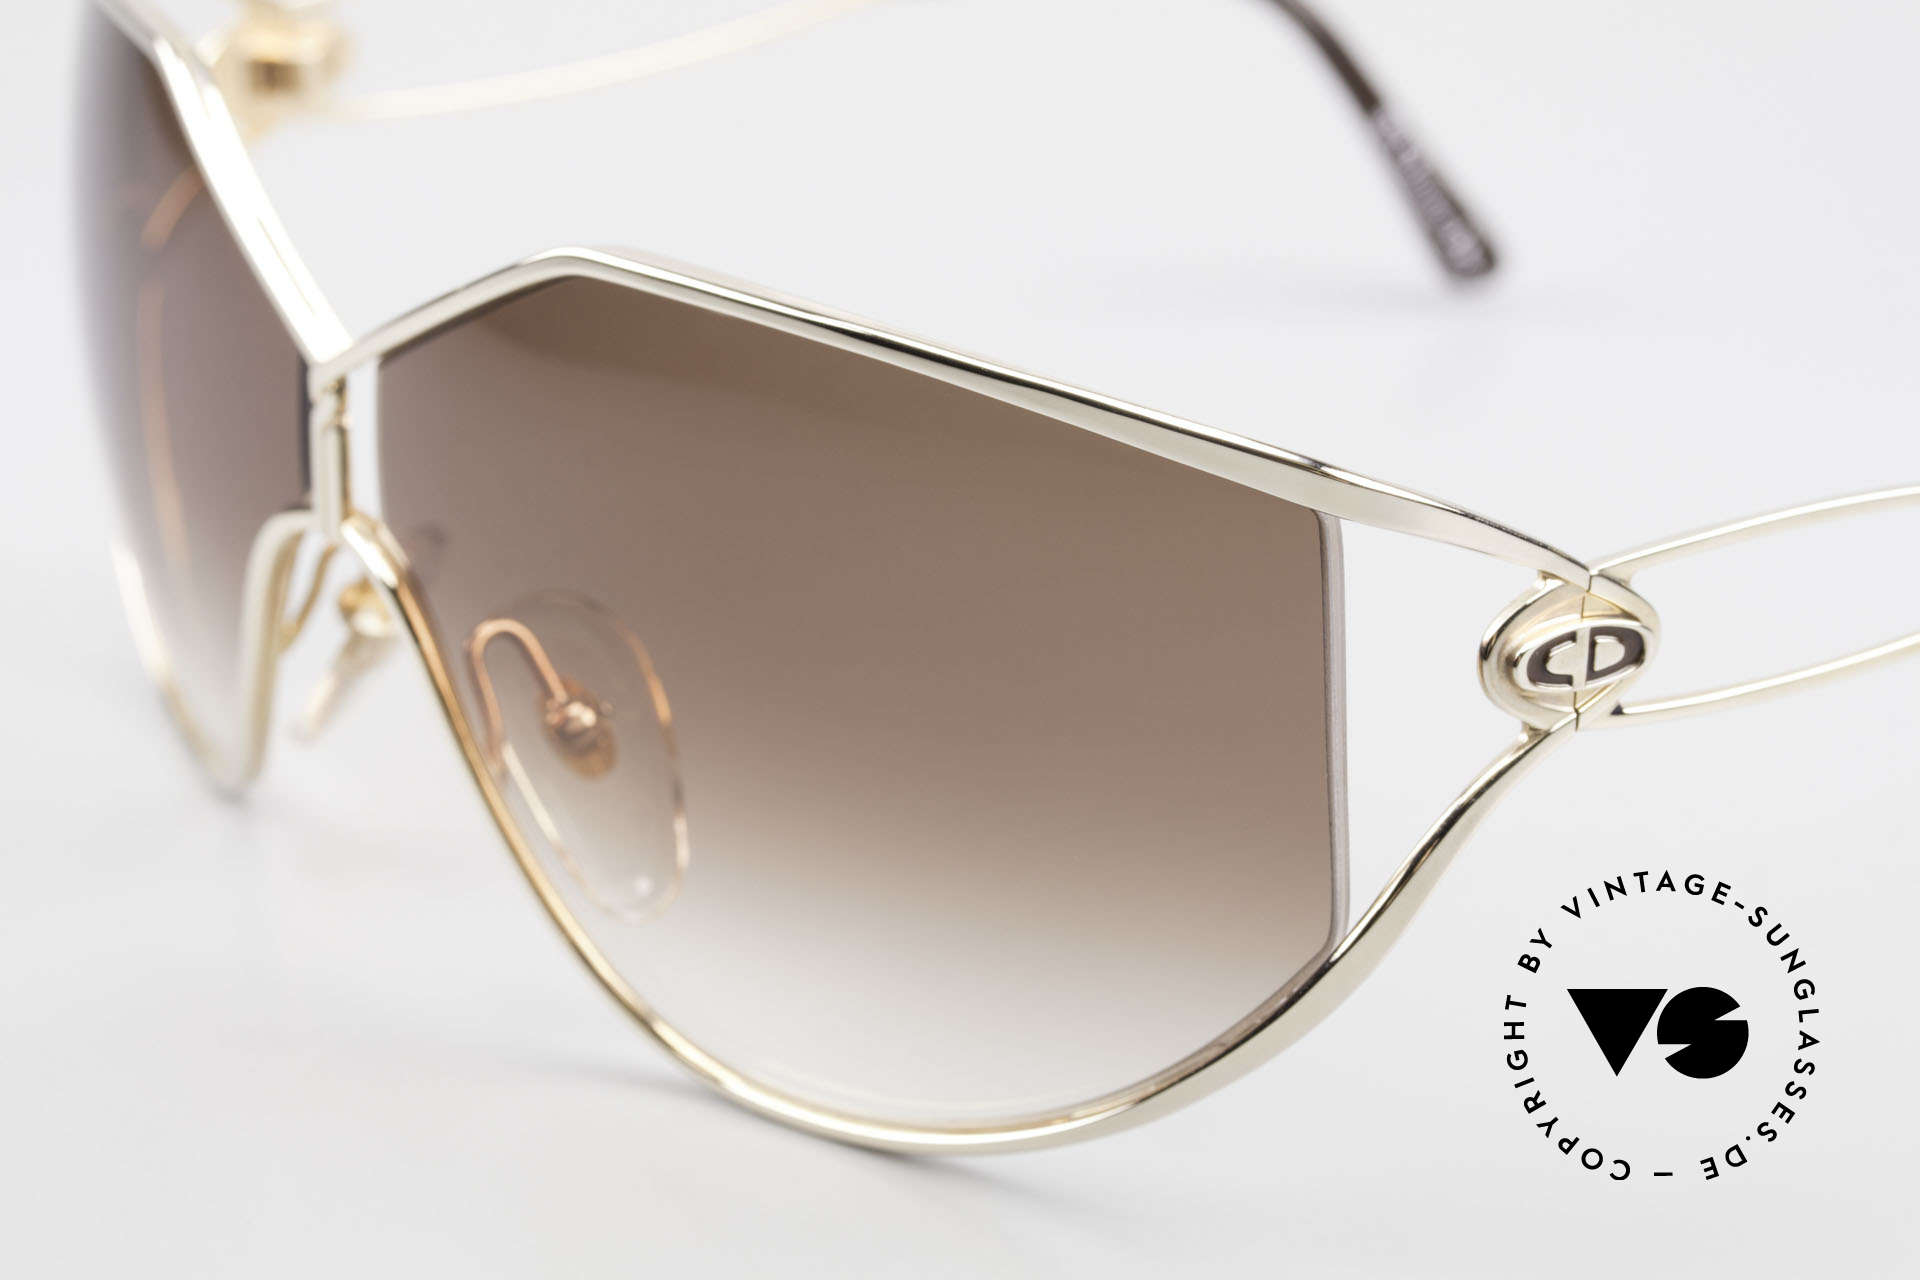 Christian Dior 2345 Ladies 90s Designer Sunglasses, never worn (like all our vintage DIOR shades), Made for Women